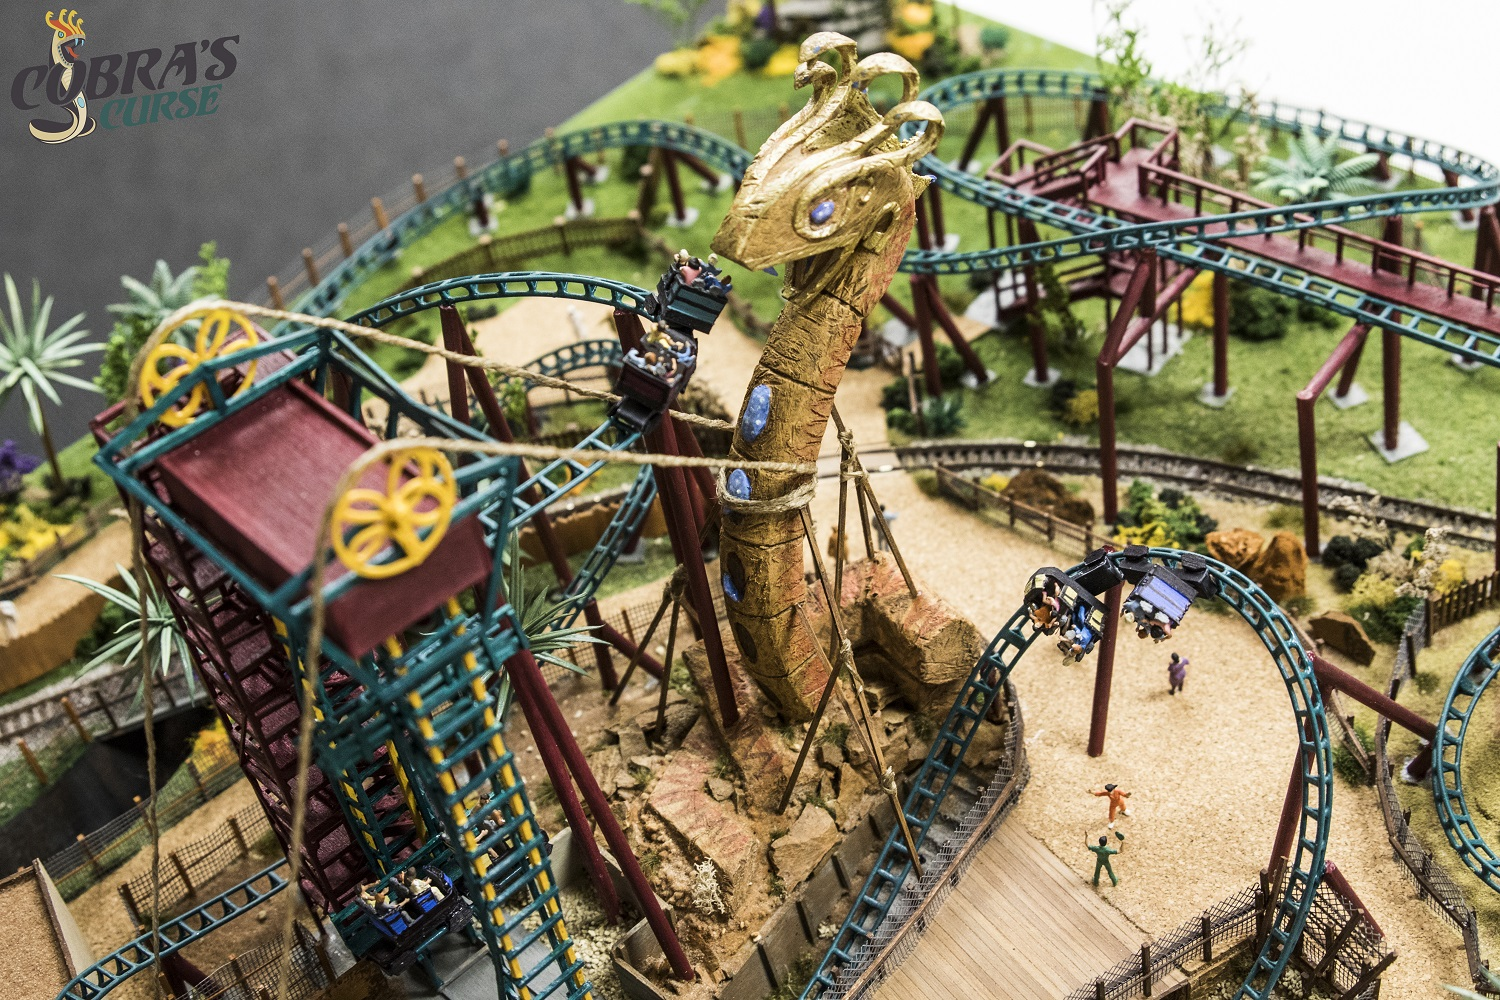 New Details & Model of Cobra\'s Curse Revealed from Busch Gardens ...